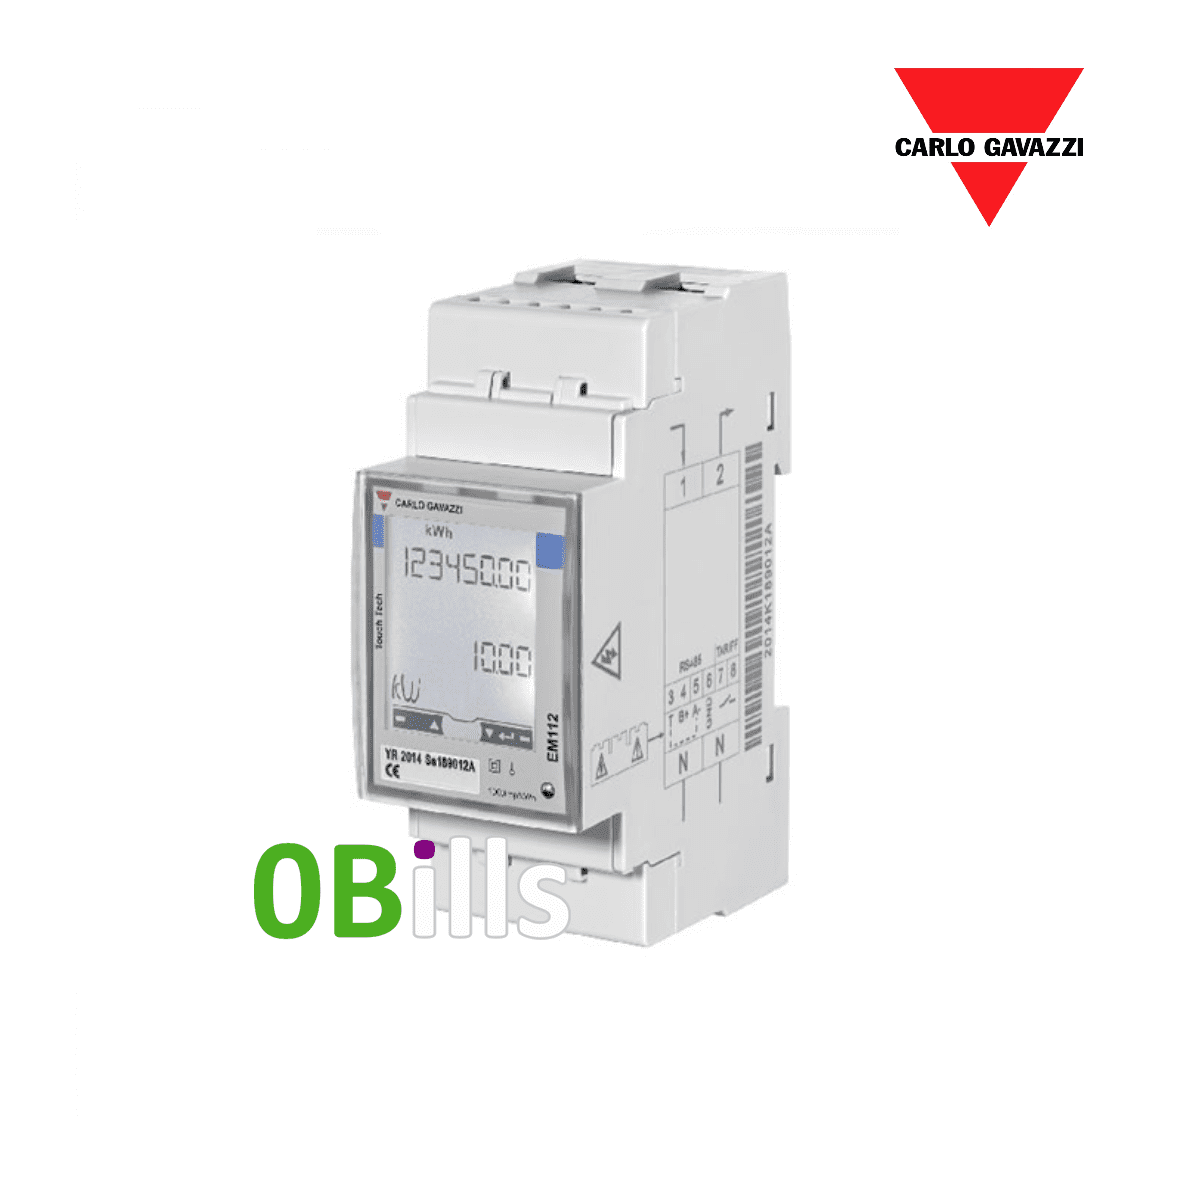 Carlo Gavazzi EM112 1ph Smart Energy Analyzer 100A for Huawei